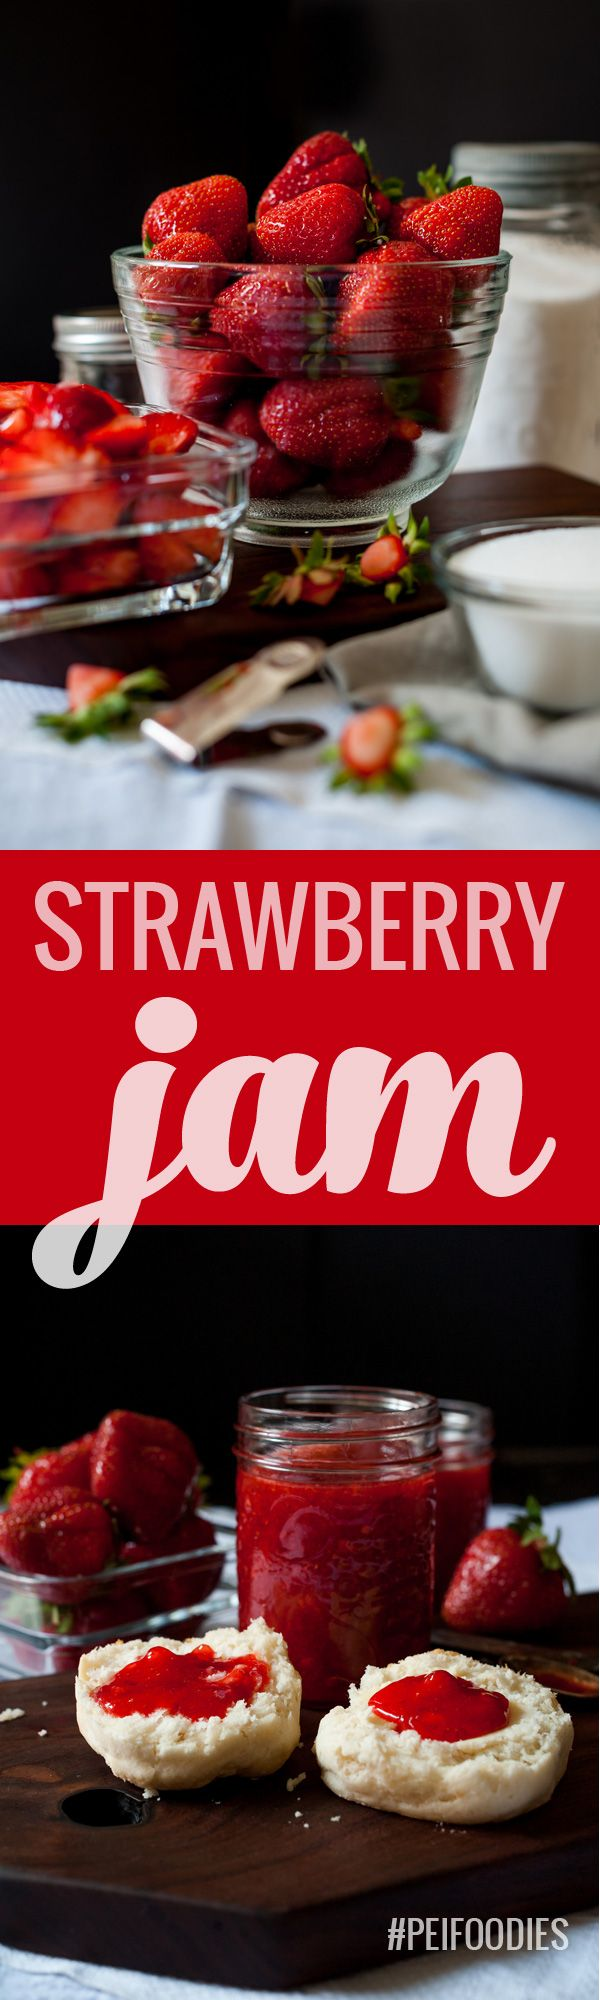 We made freezer jam and it's super easy and delicious! Check it out on the #PEIfoodies blog today!